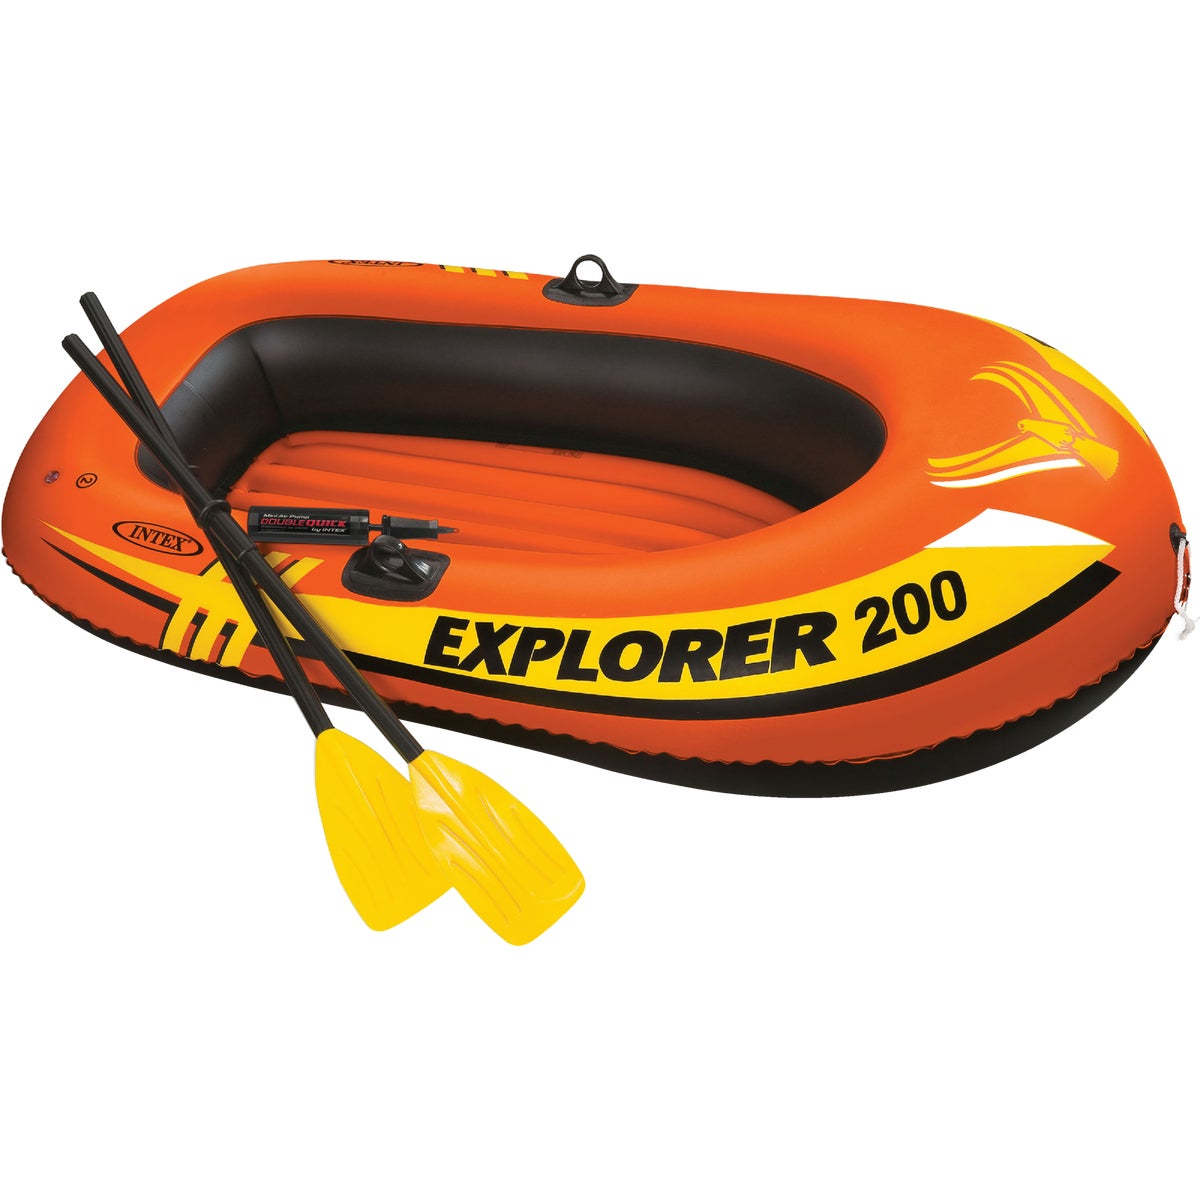 2-PERSON EXPLORER BOAT - 58331EP by Intex Recreation